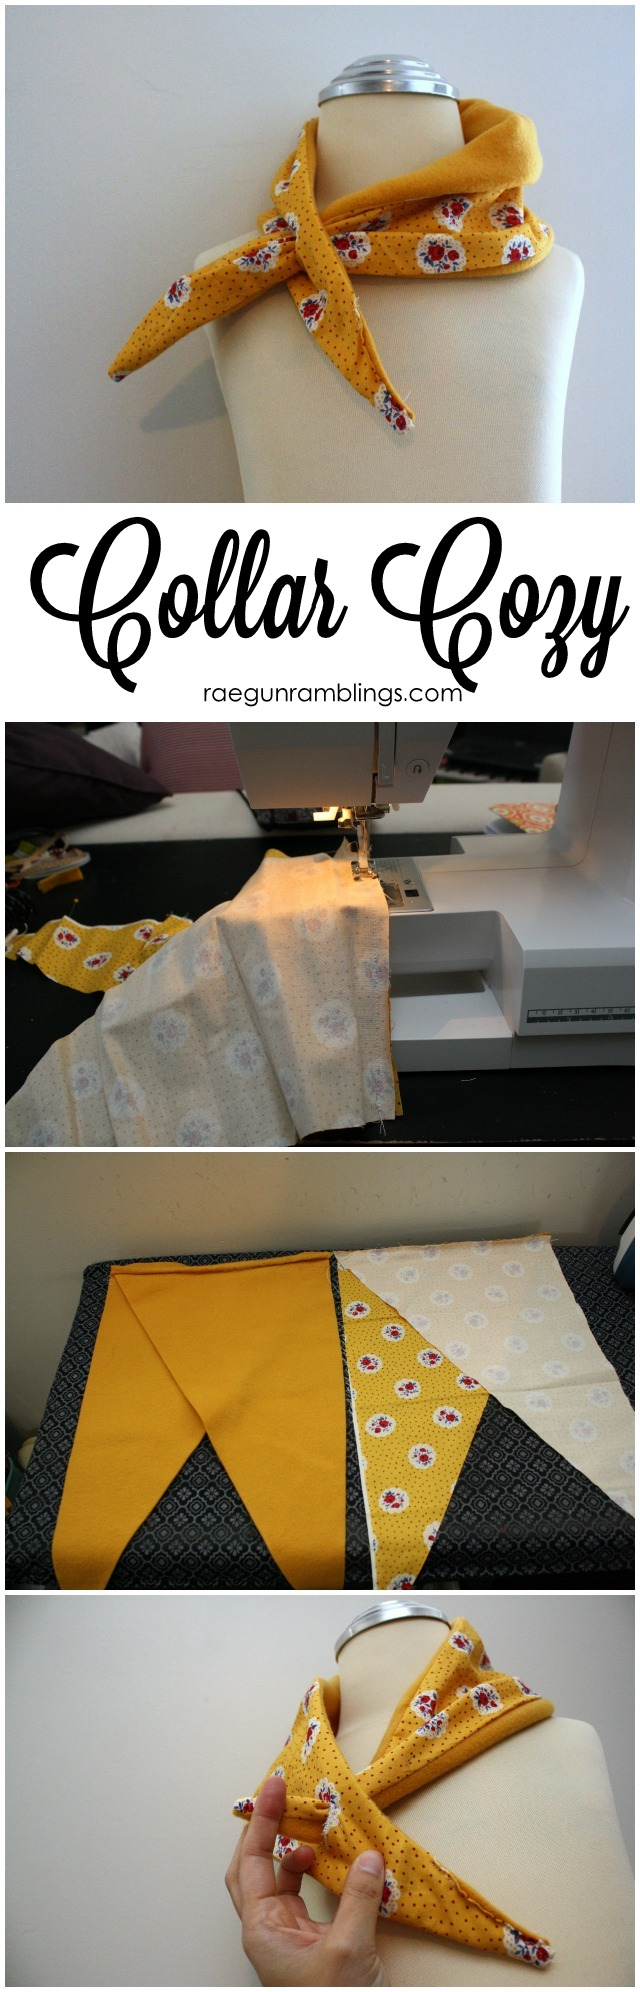 How to make a cute alternative to a scarf a collar cozy (great gift idea) Rae Gun Ramblings